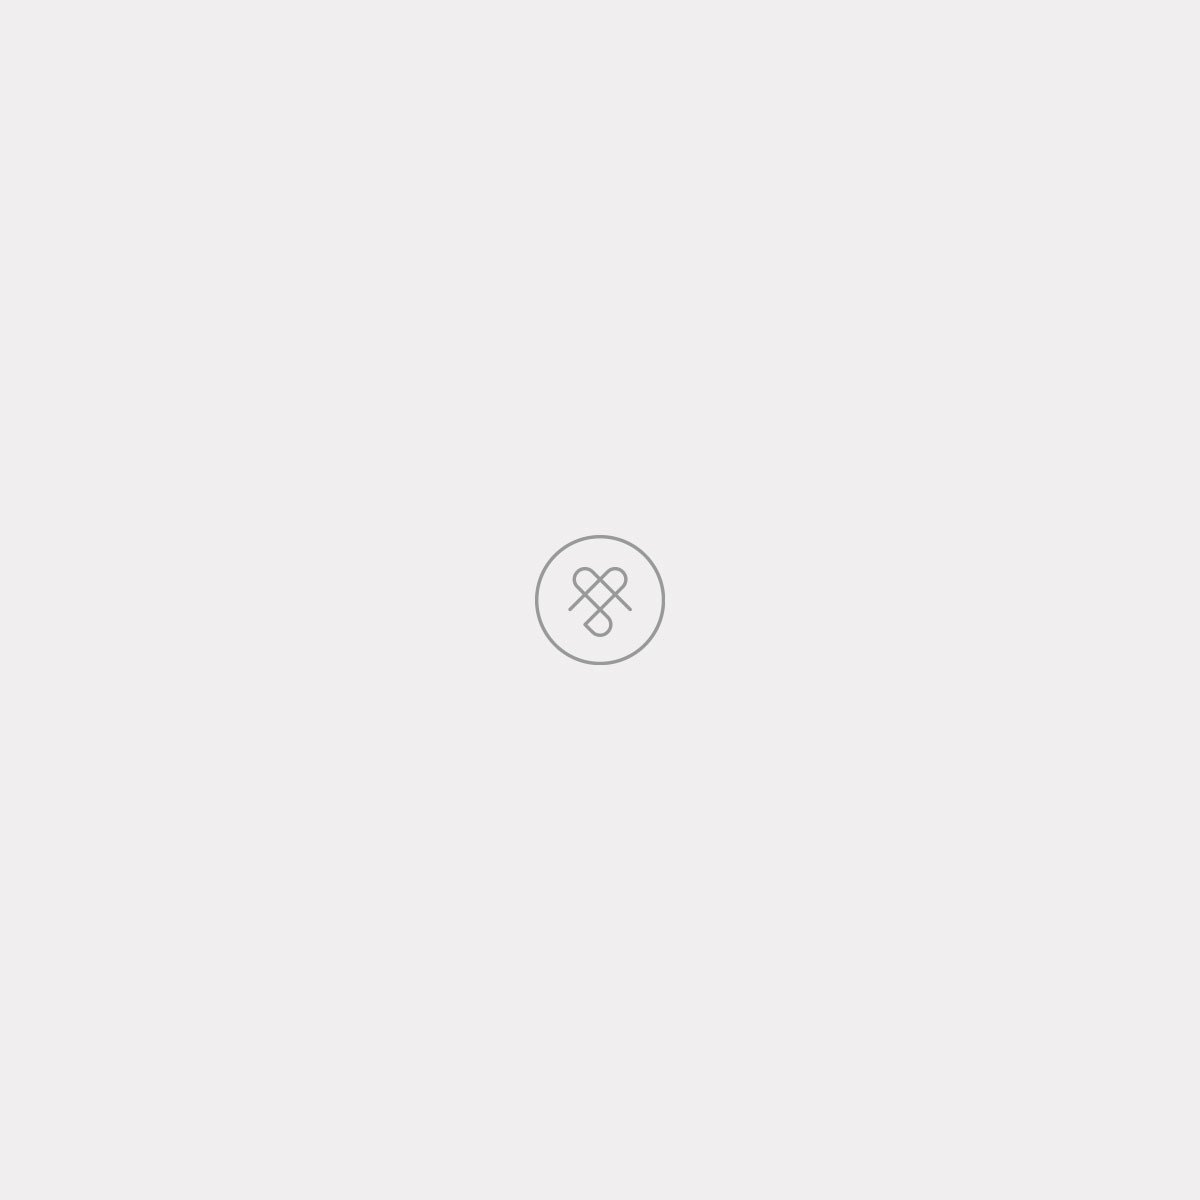 quality leather luggage tag